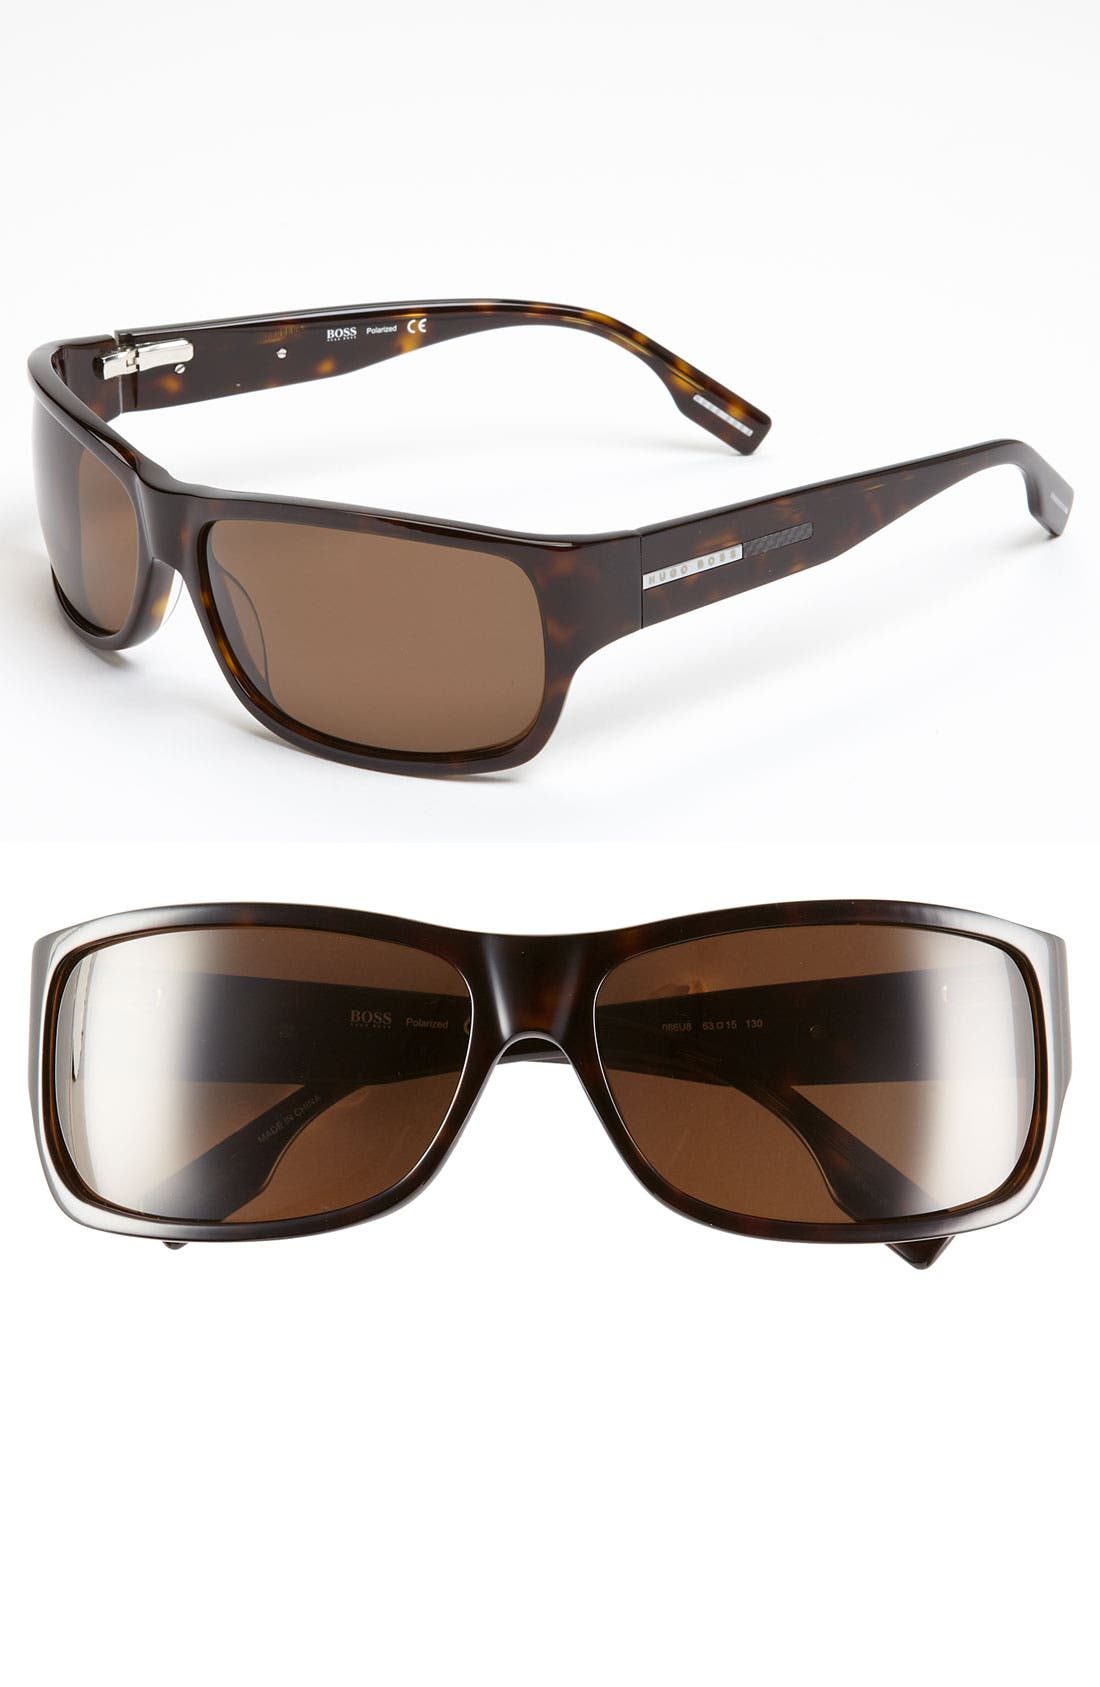 Main Image - BOSS Black Polarized 63mm Sunglasses